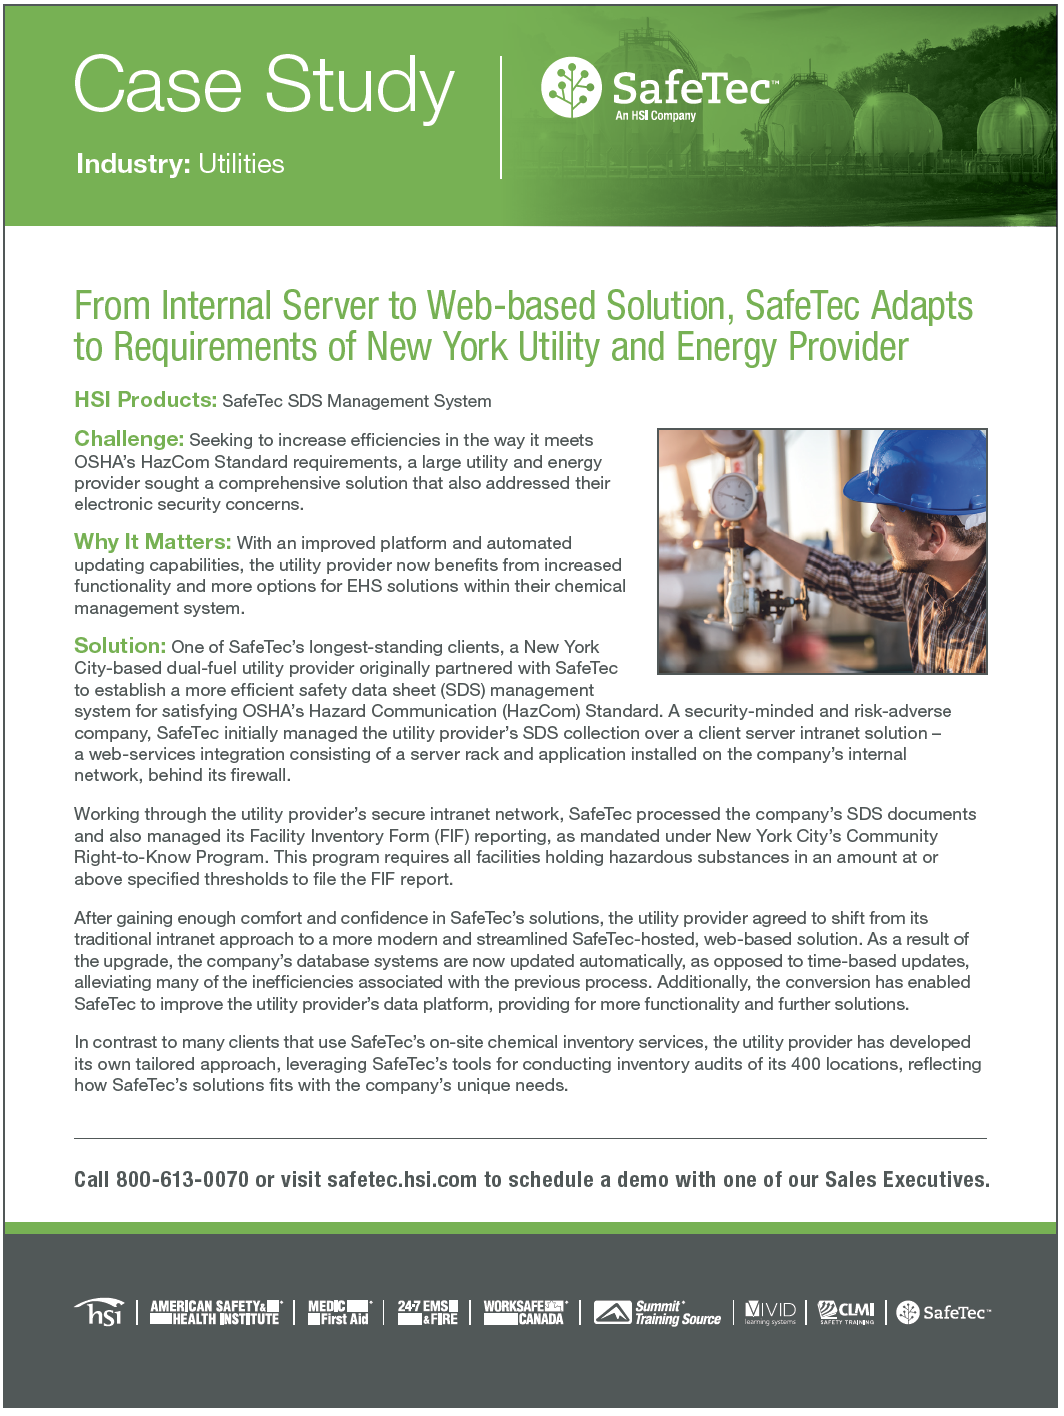 New York Utilities Provider SDS Management Case Study